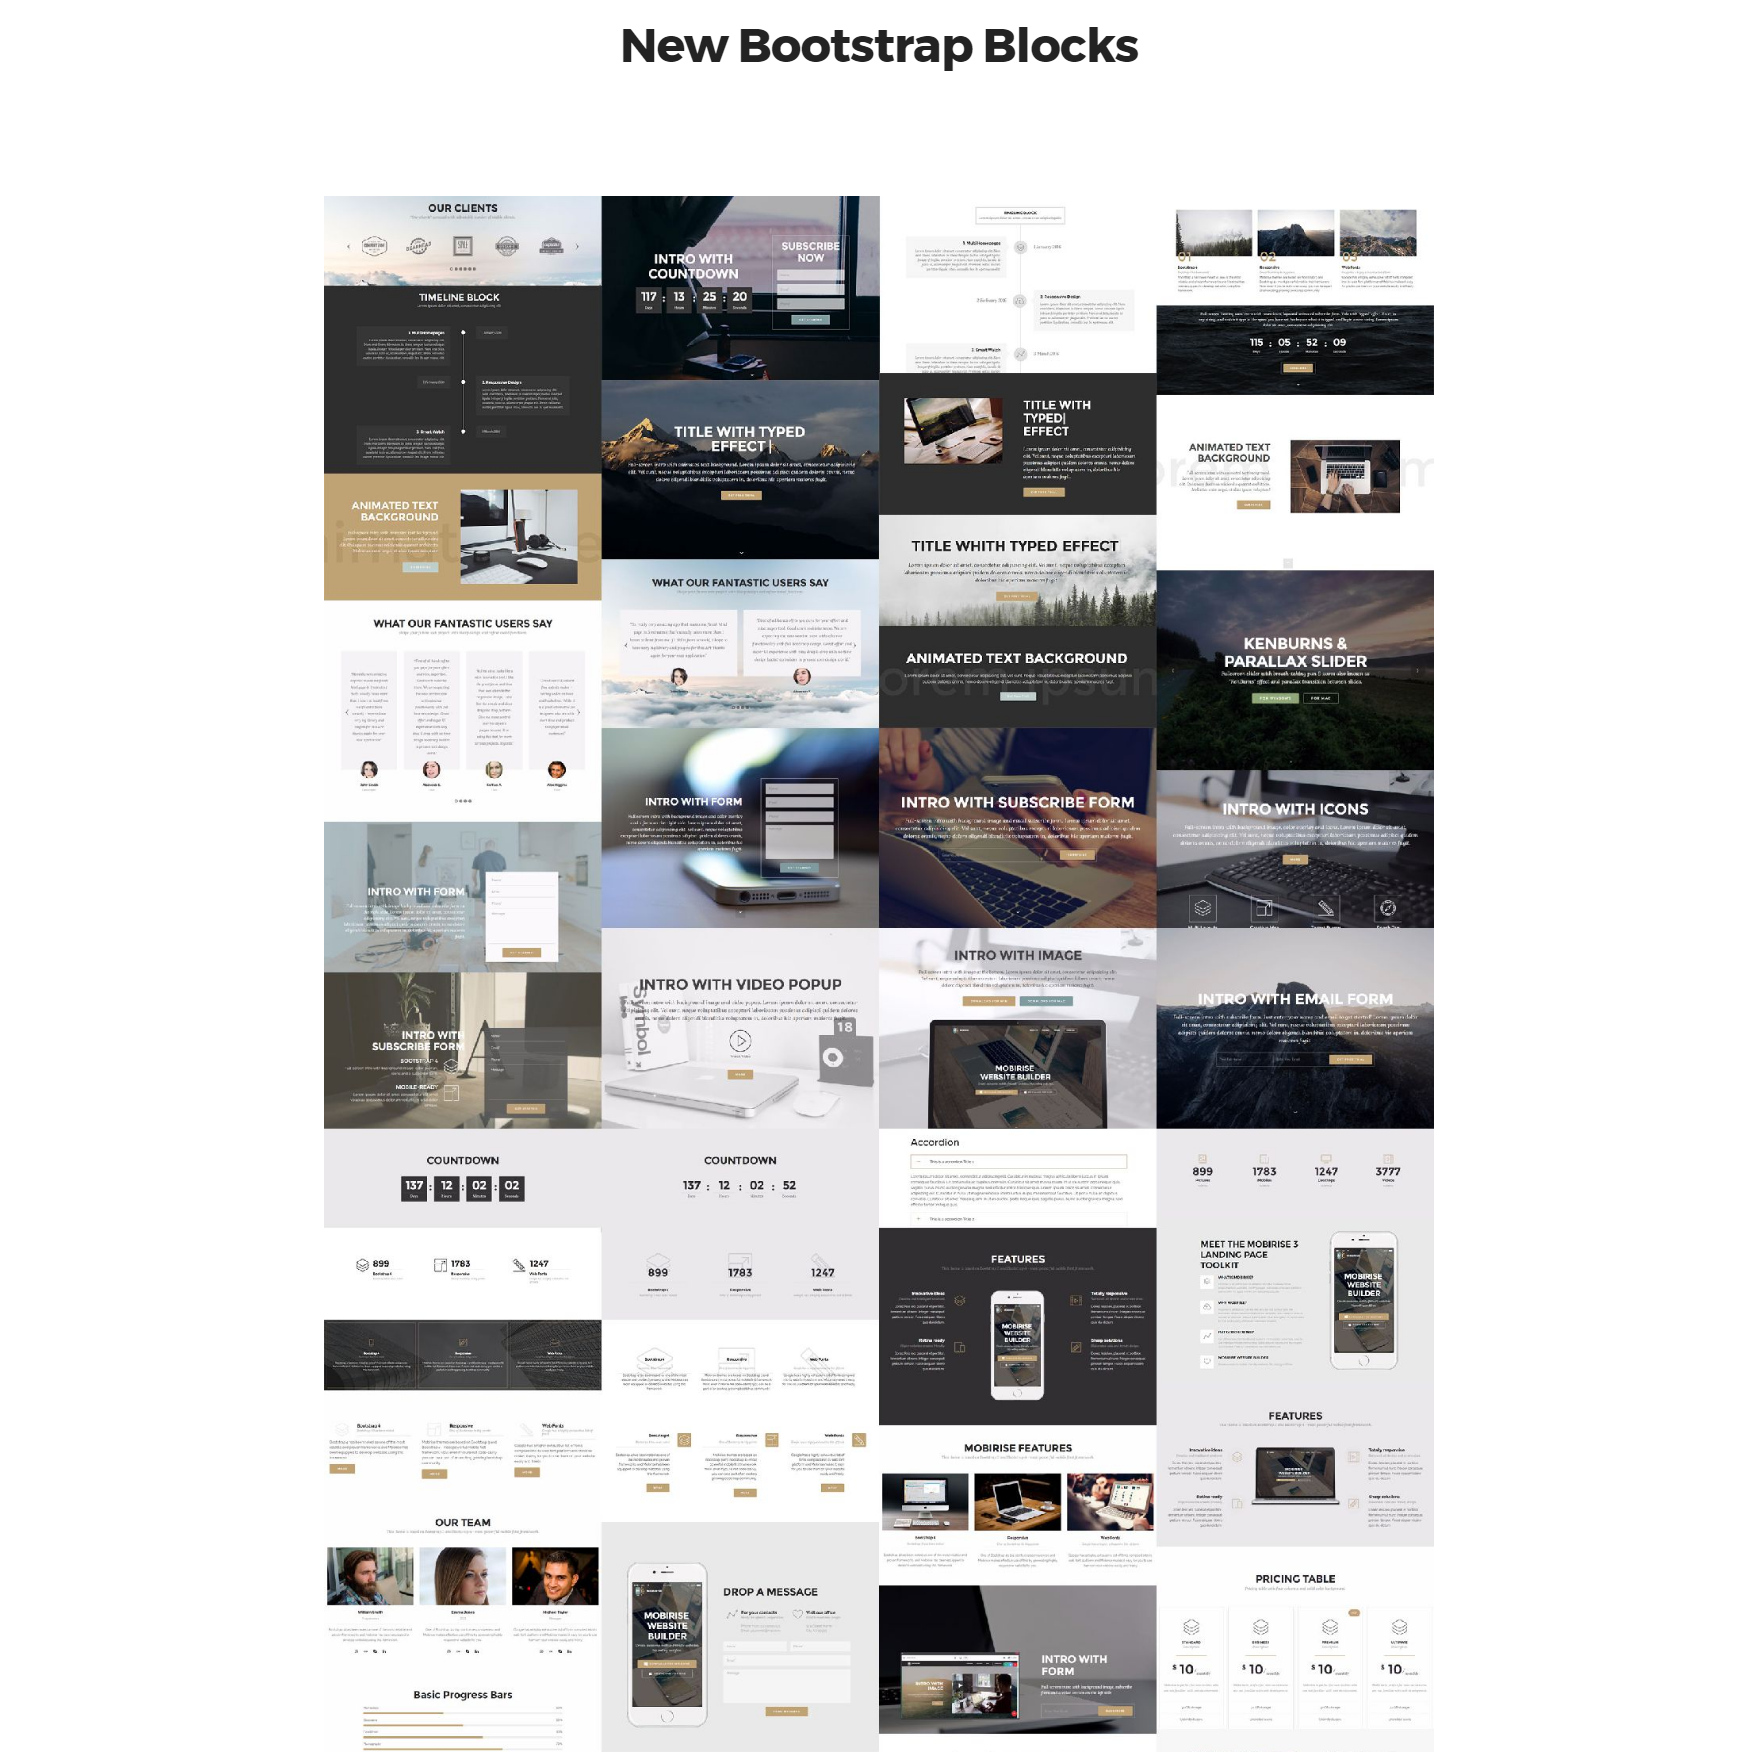 HTML5 Bootstrap 4 mobile-friendly blocks Themes